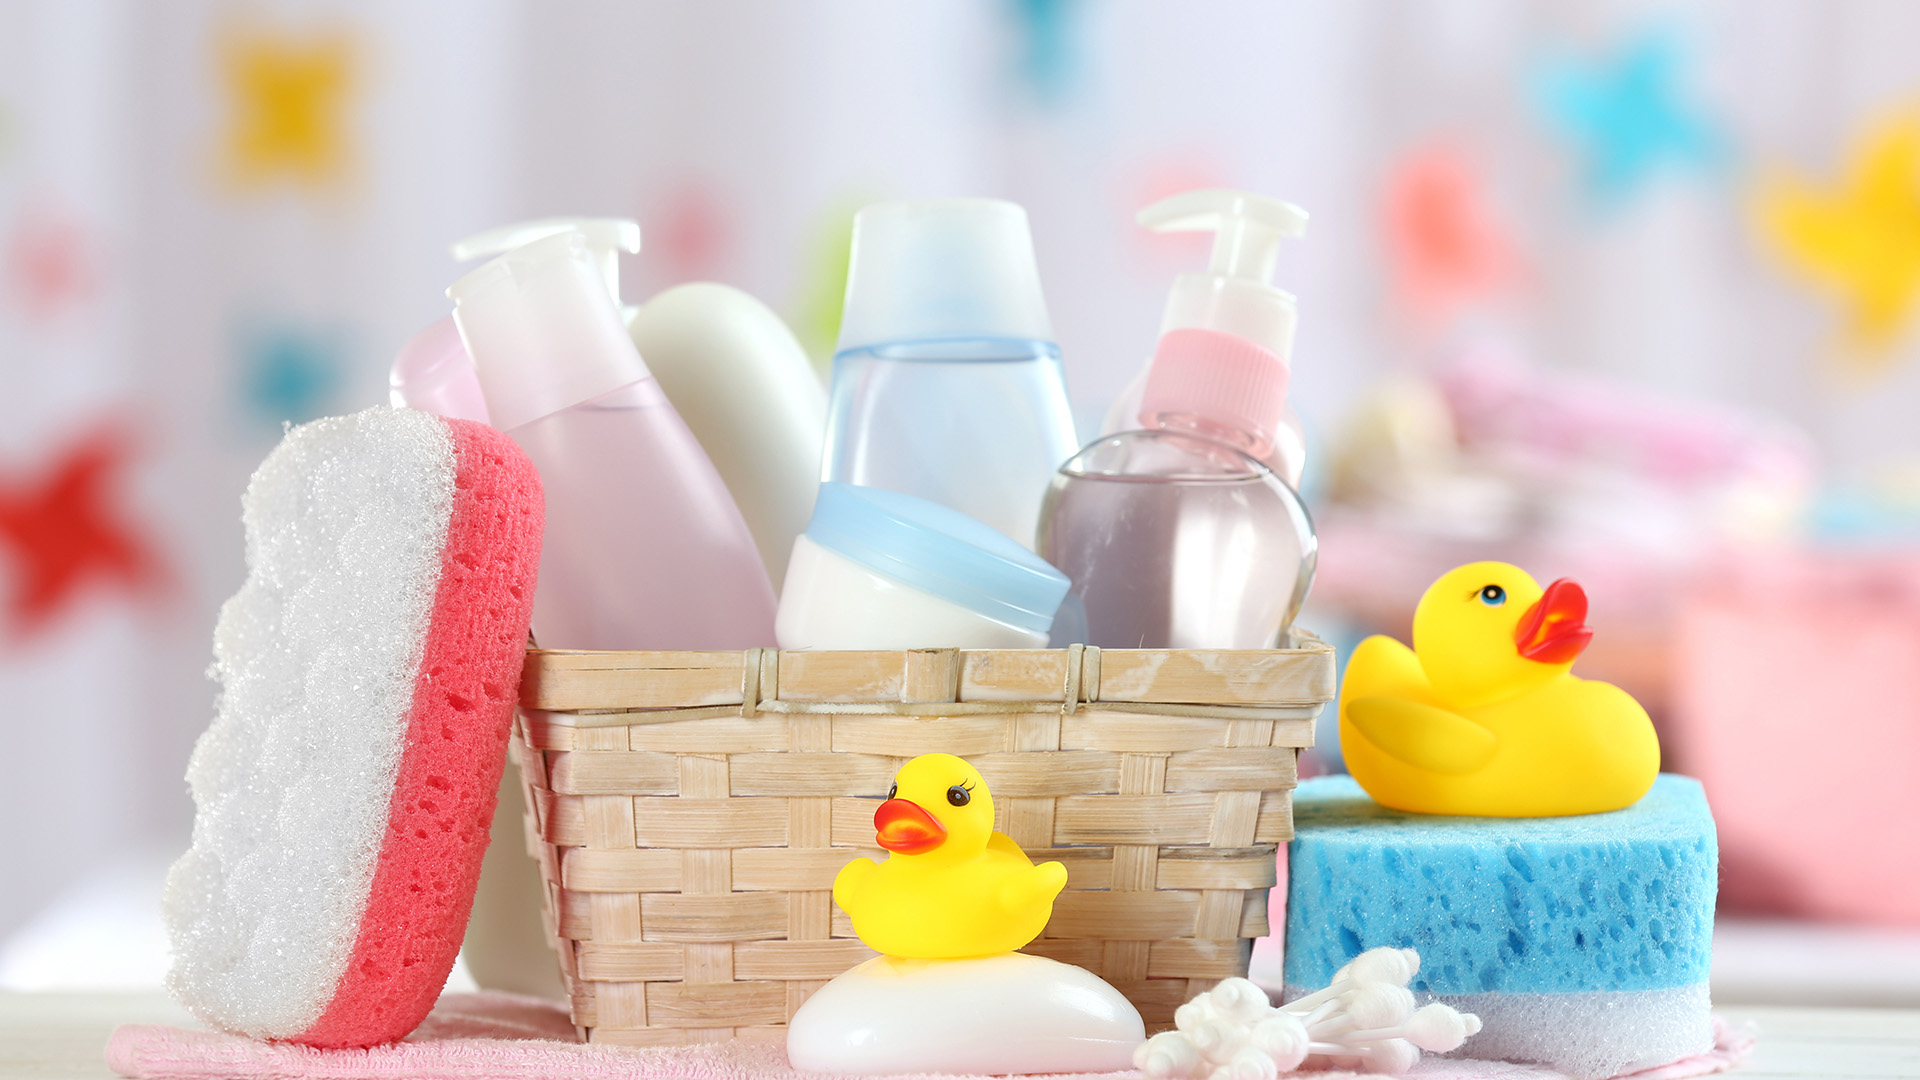 Safe Baby Shampoos That Are Gentle on Their Delicate Skin